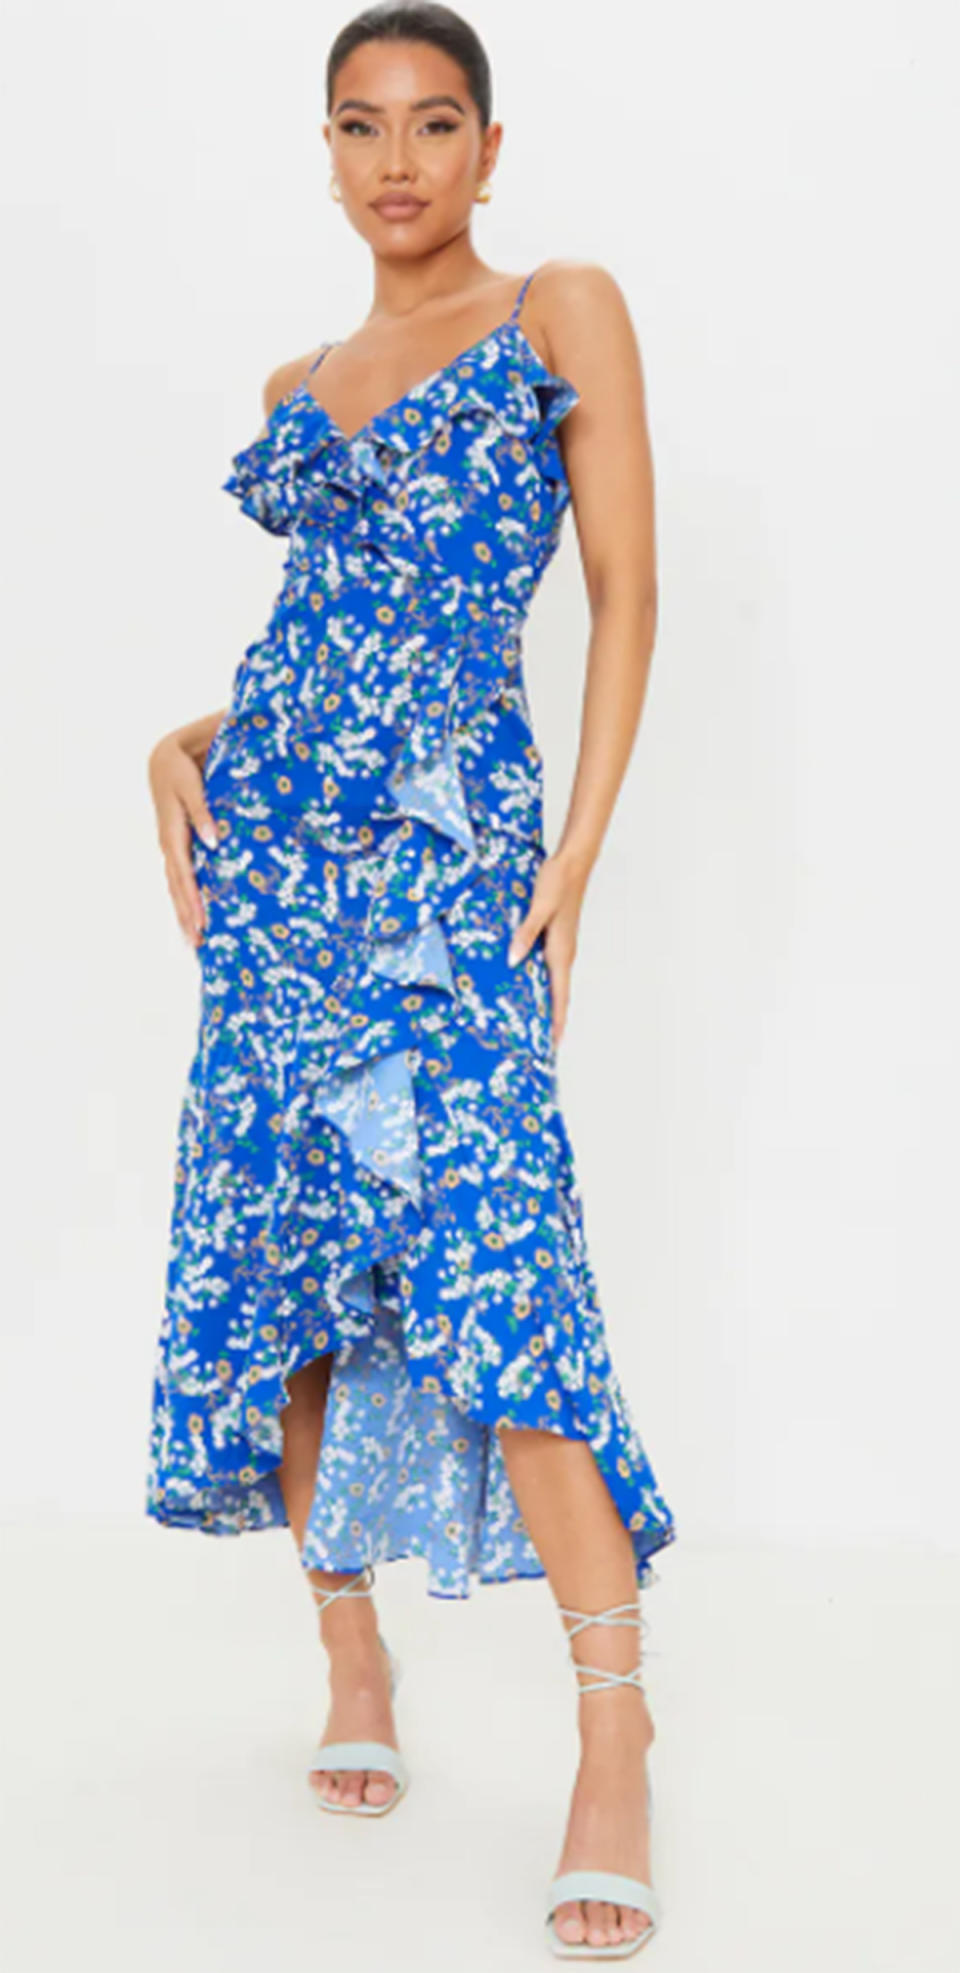 Pretty Little Thing Blue Floral Frill Detail Tie Strap Wrap Midi Dress, $46. Photo: Pretty Little Thing.